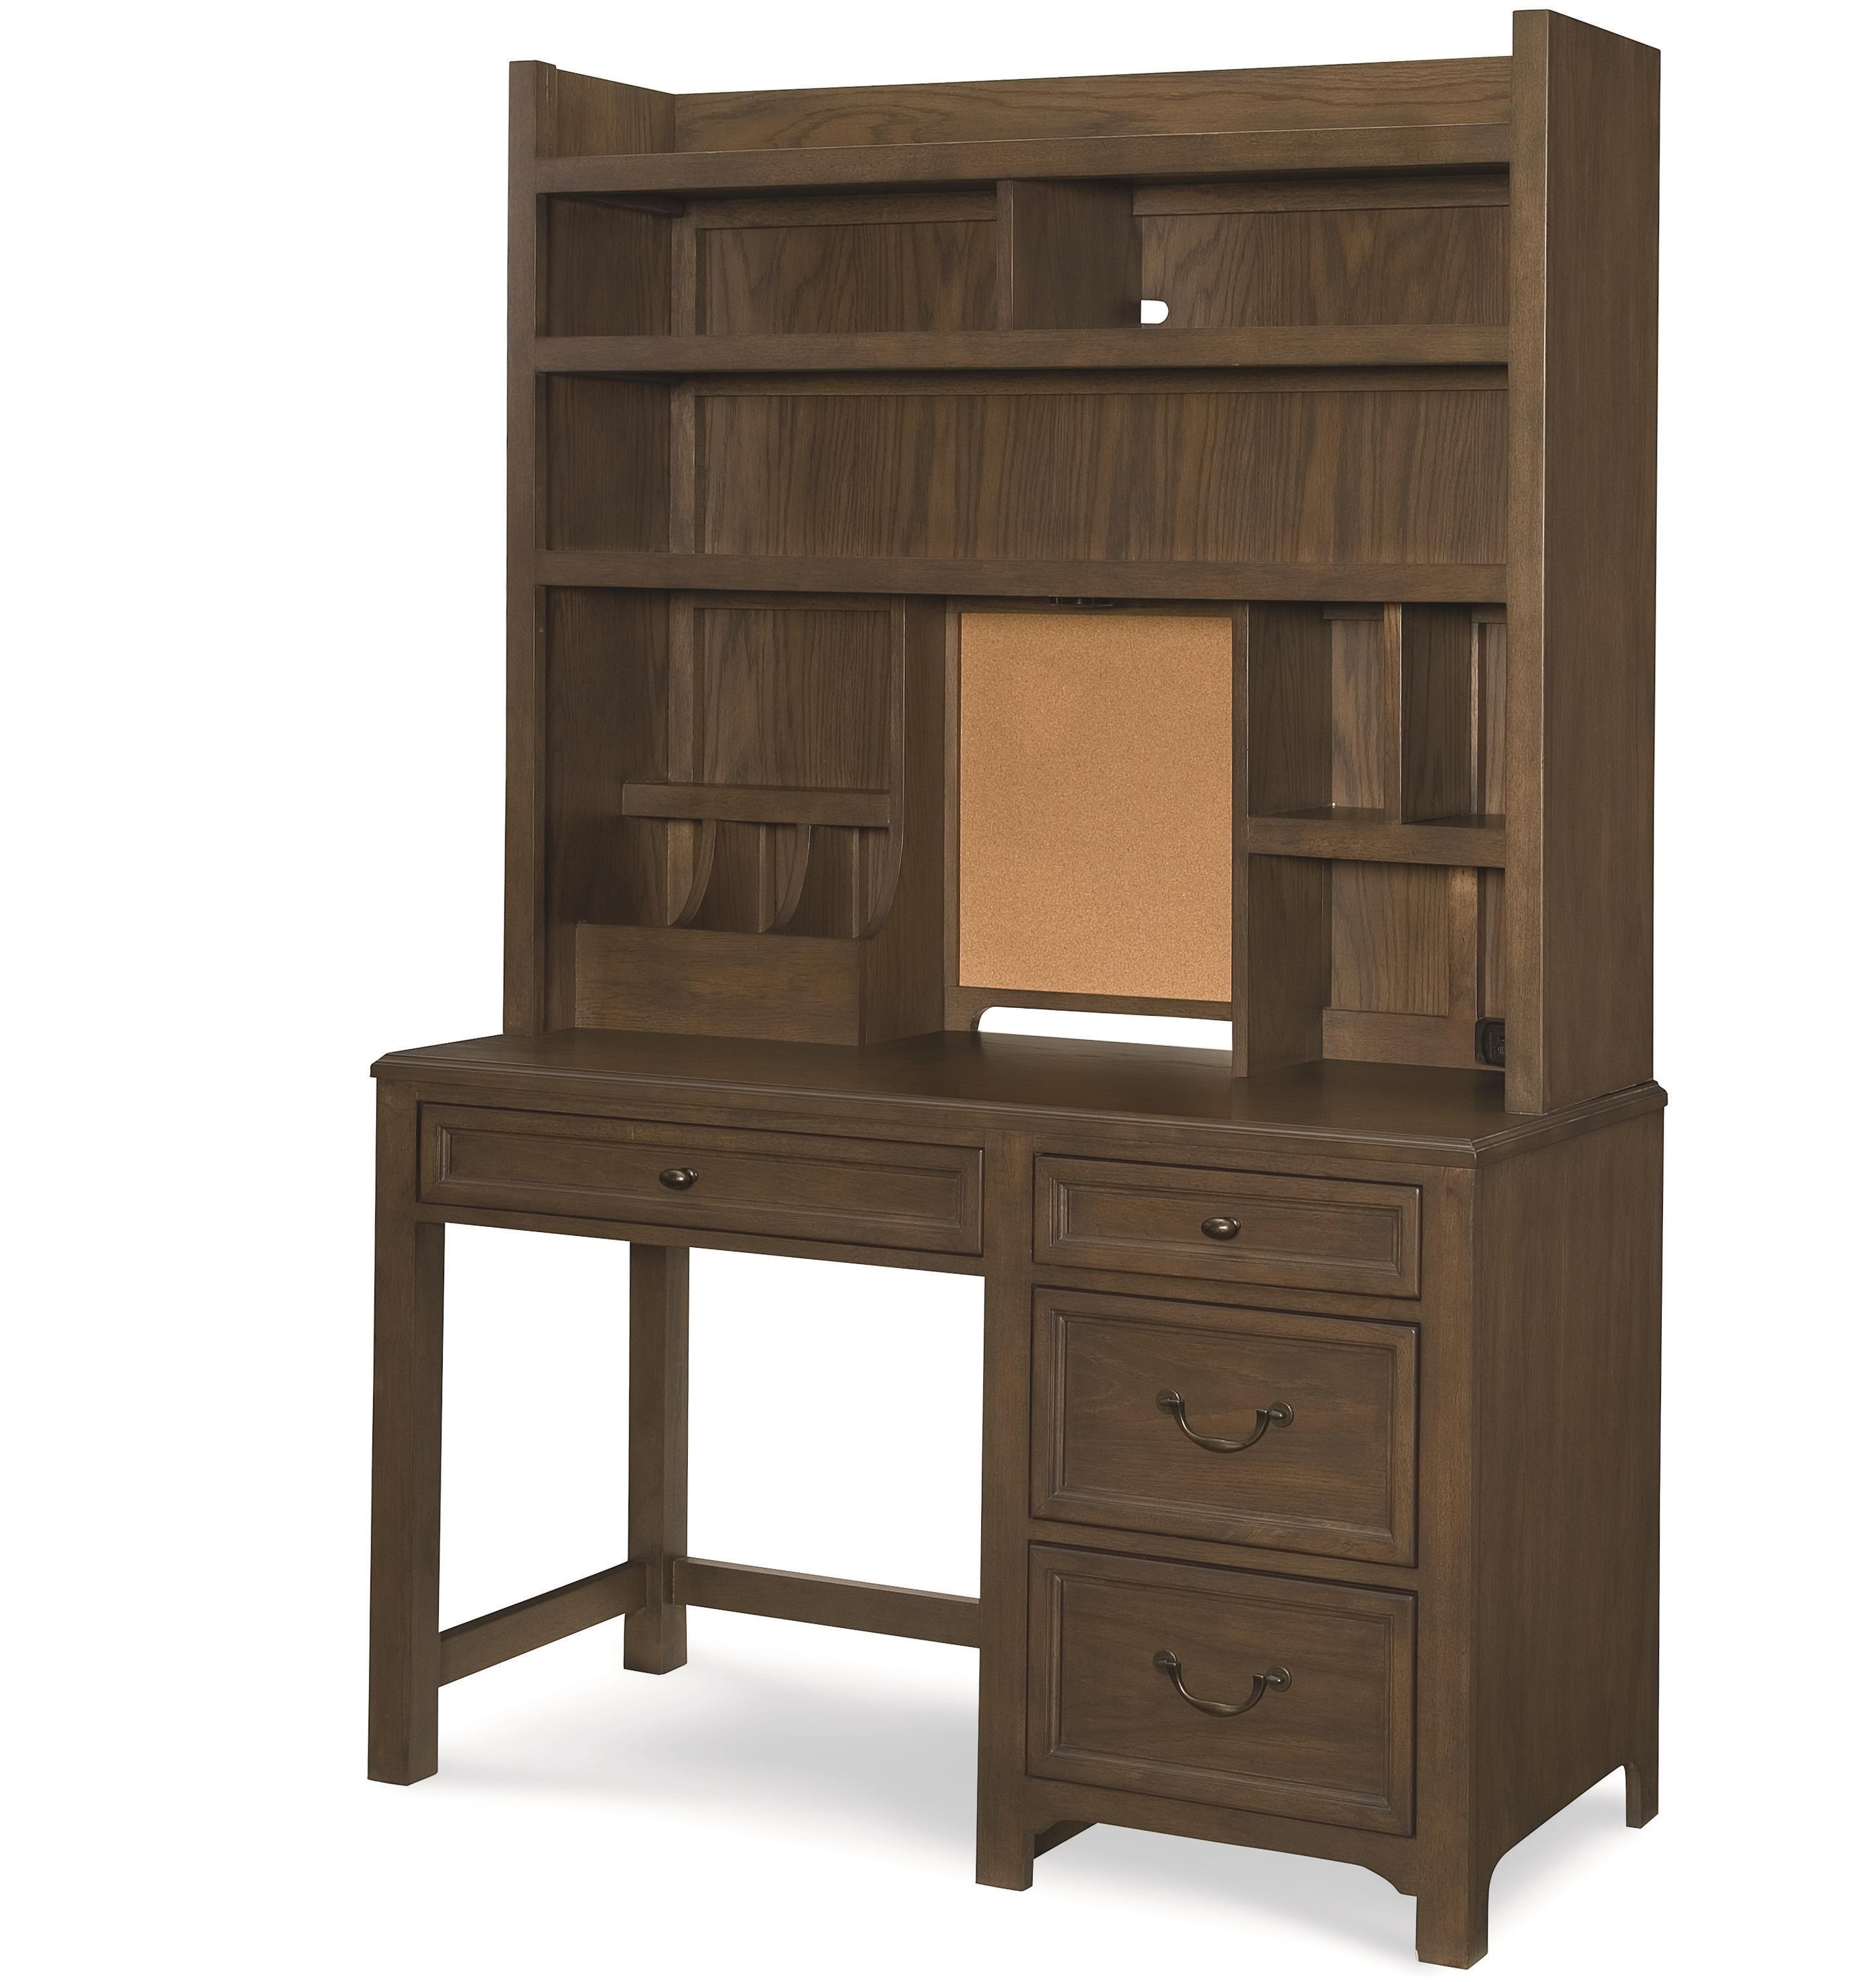 Legacy Classic Kids Kenwood Desk and Hutch - Item Number: 4800-6100+6200